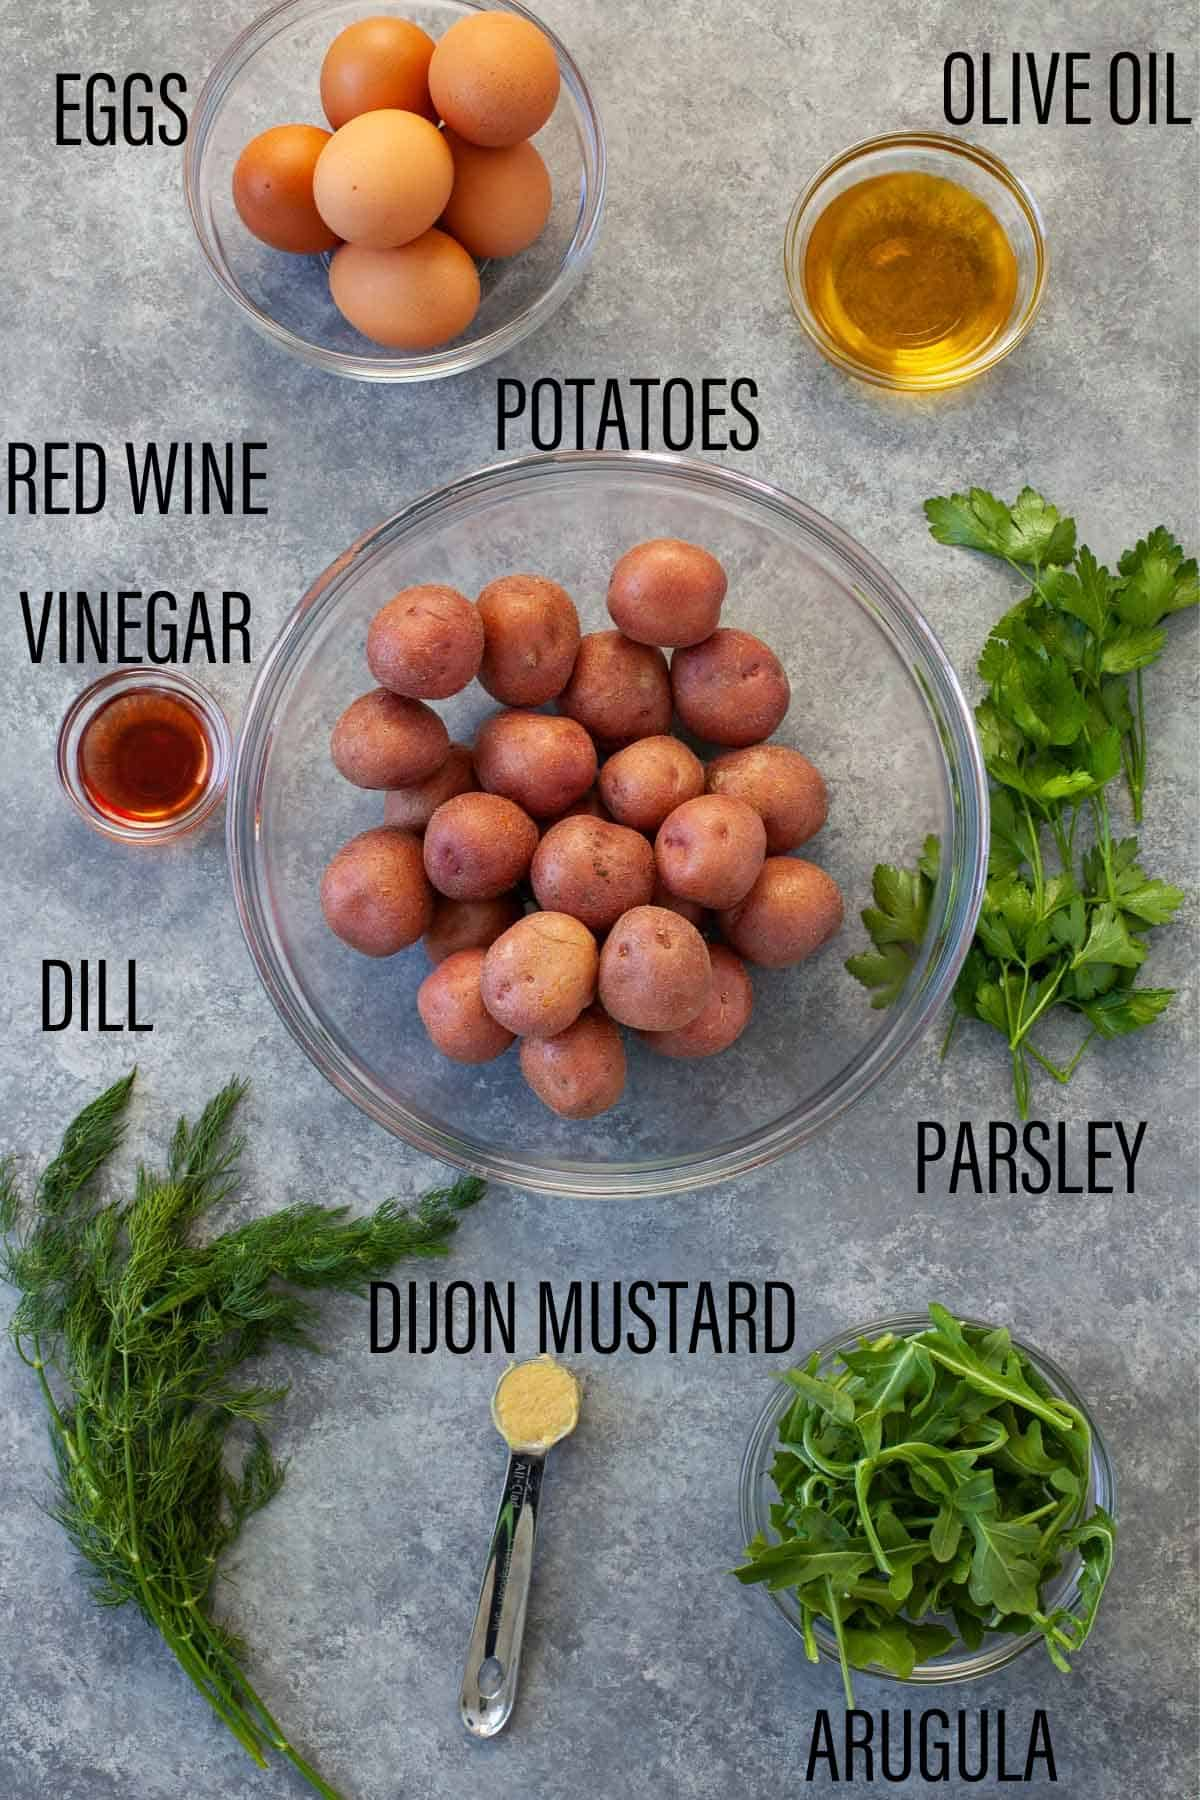 eggs, olive oil, red wine vinegar, potatoes, dill, dijon mustard, parsley, and arugula spread out on a counter